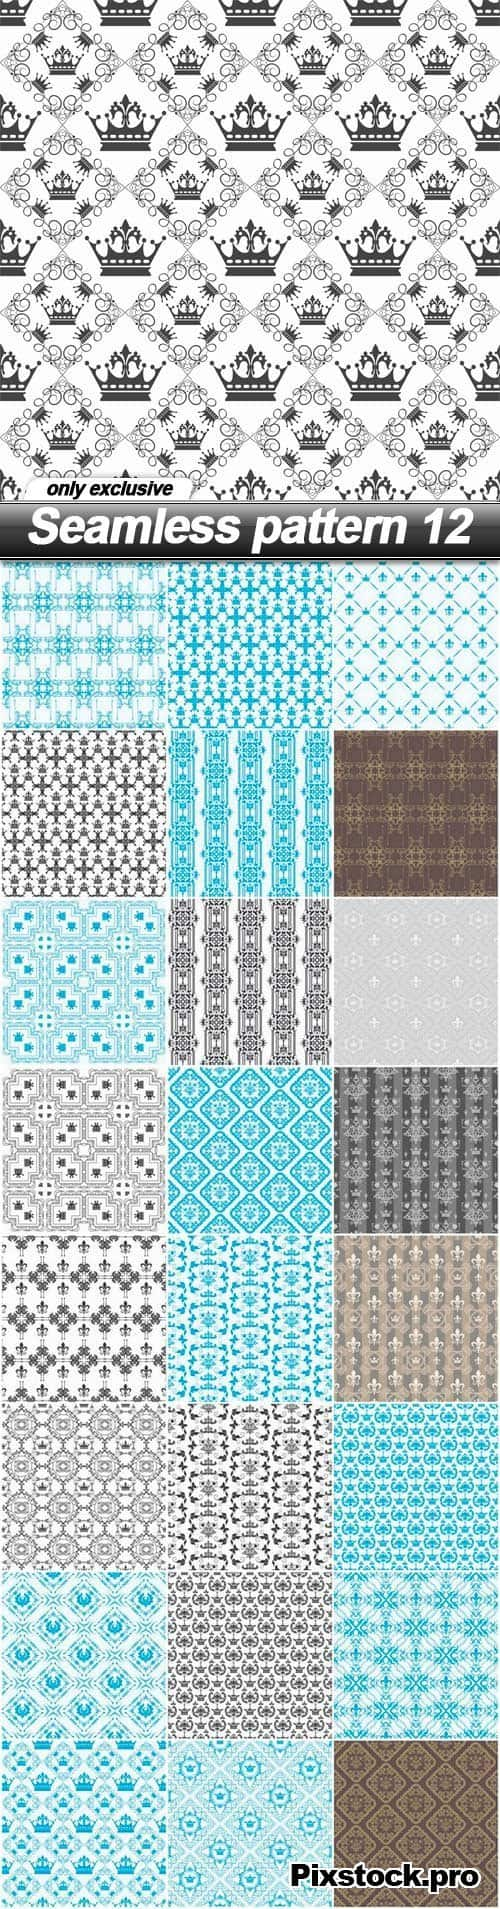 Seamless pattern 12 – 25 EPS